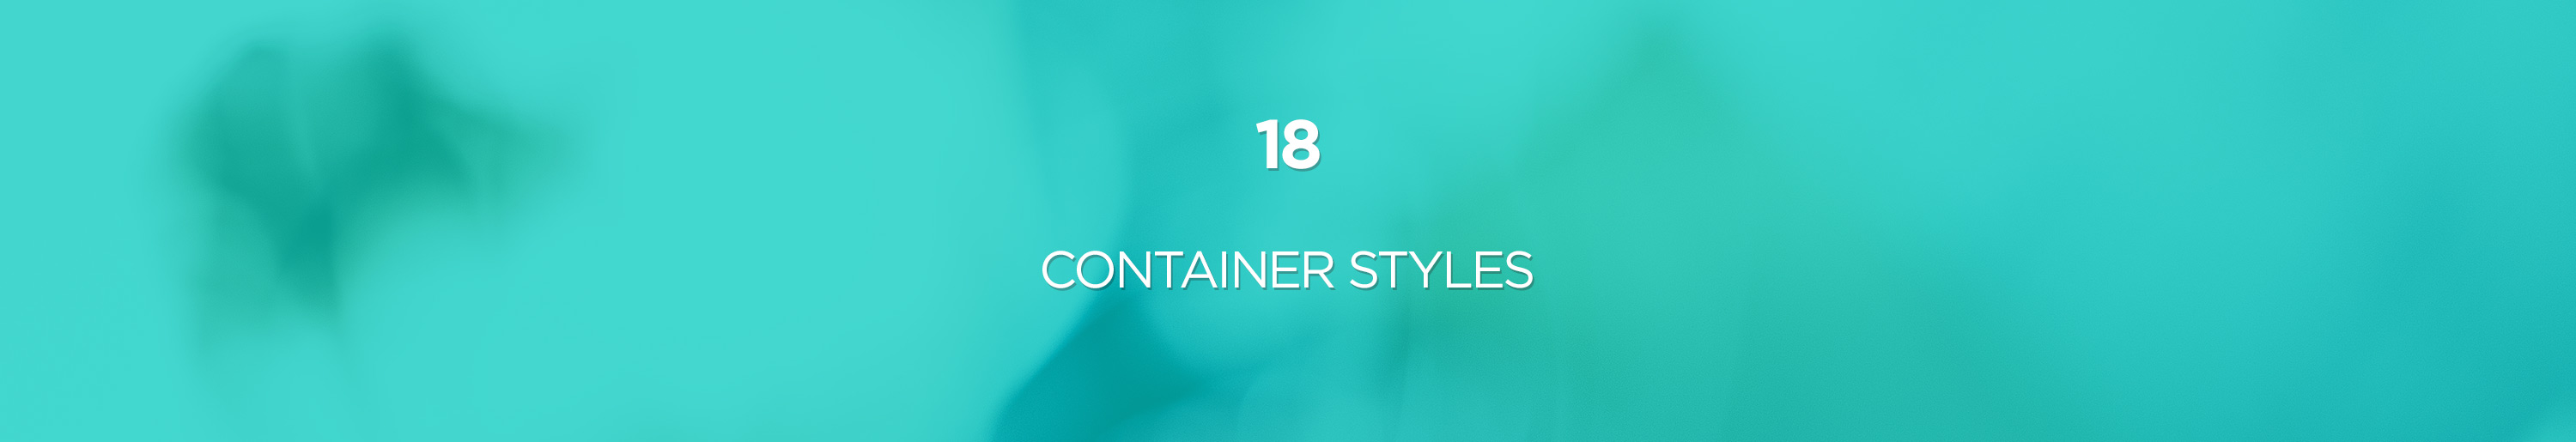 container-styles